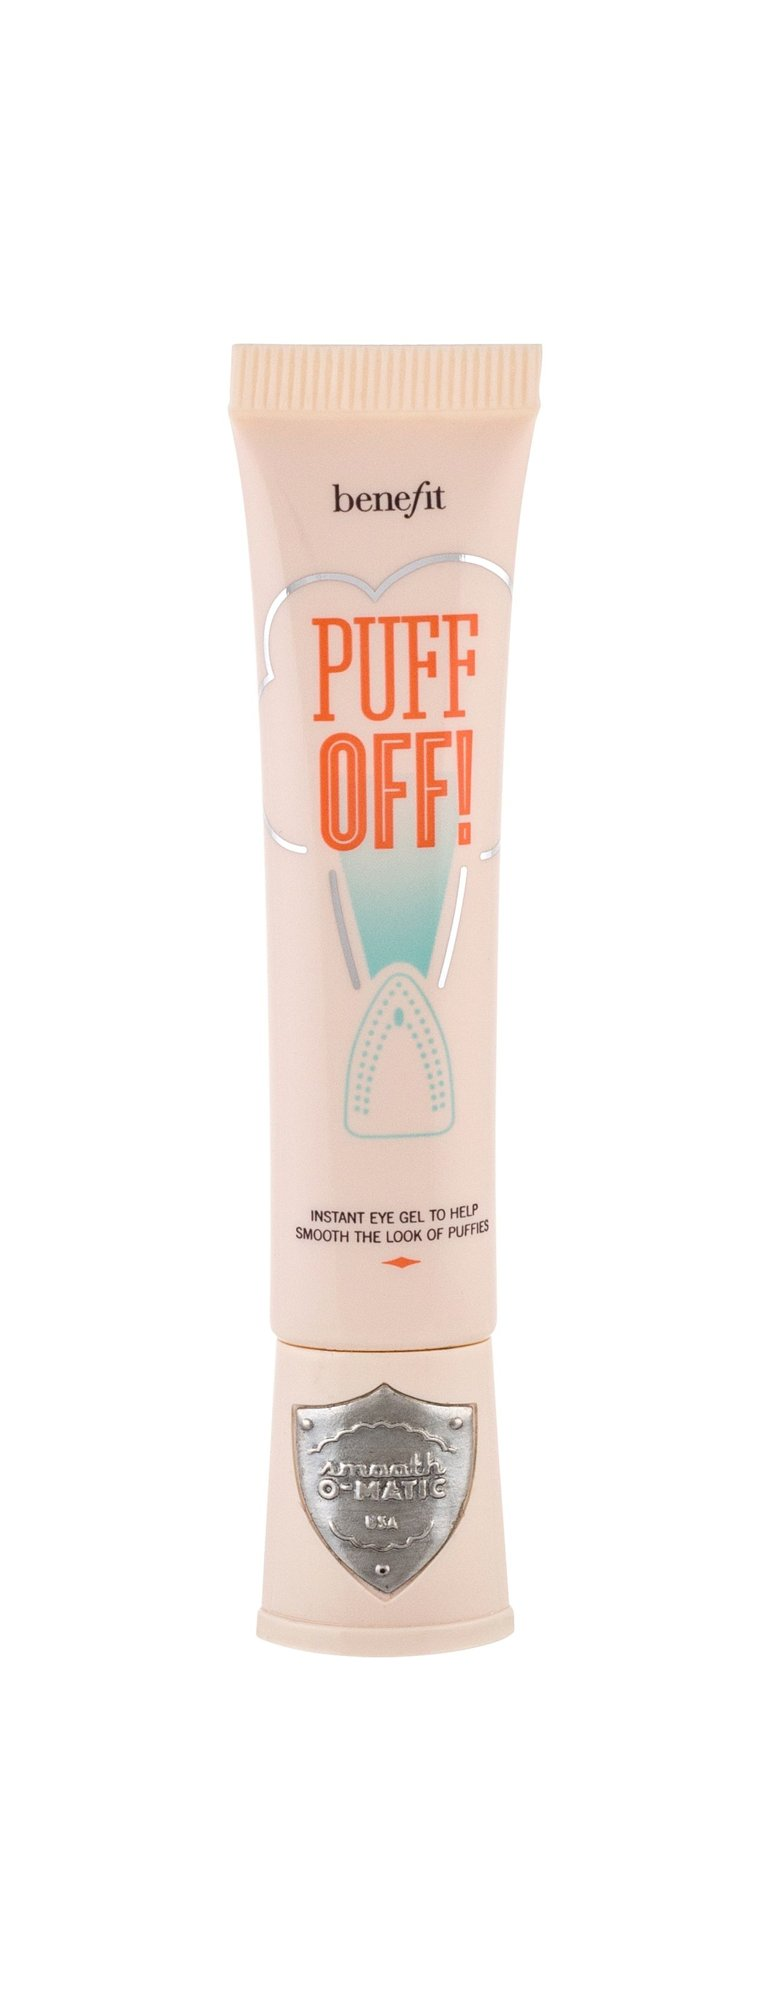 Benefit Puff Off! Eye Gel 10ml